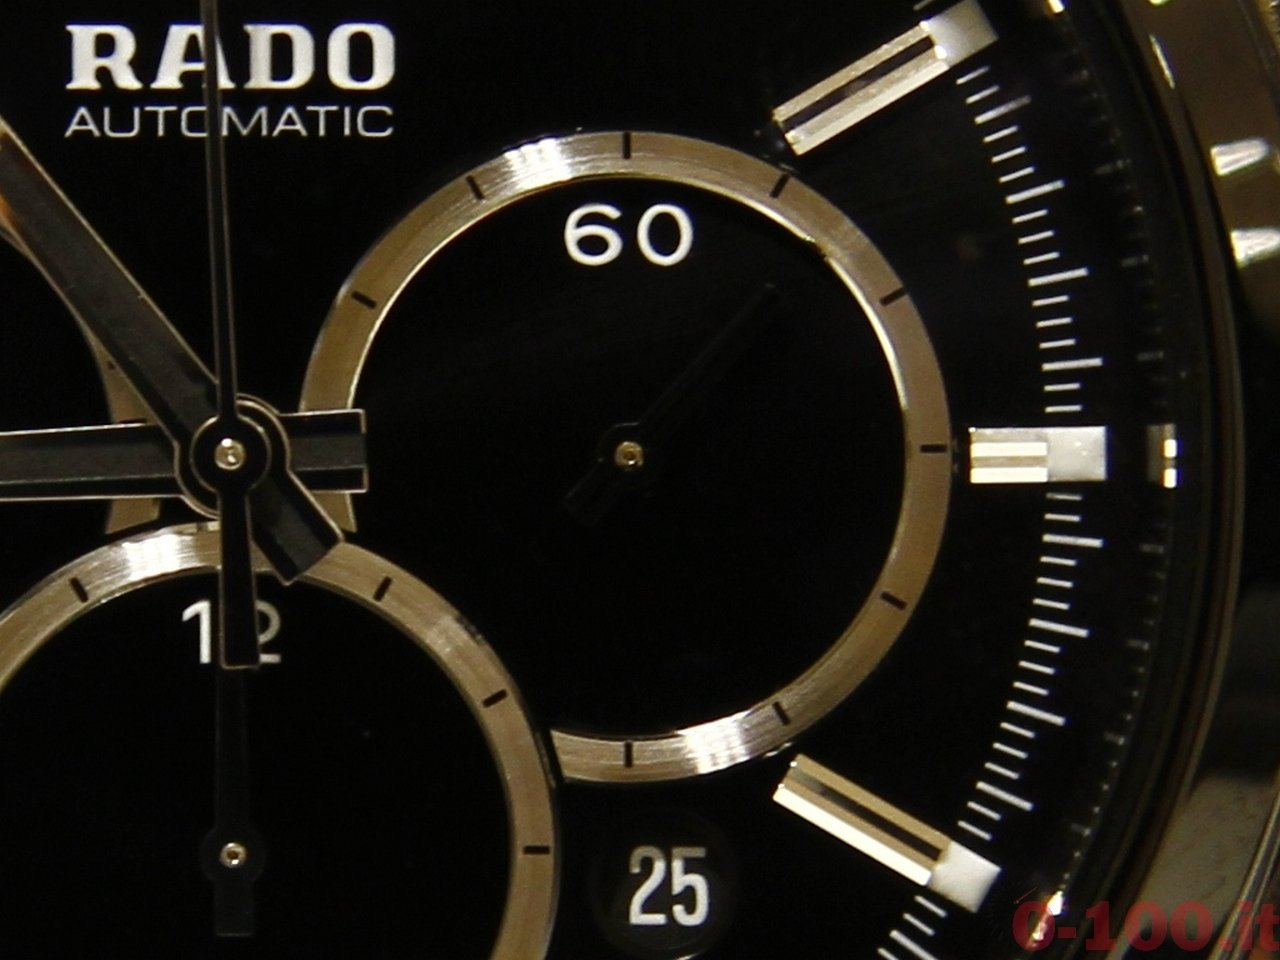 watch-test-rado-hyperchrome-automatic-chronograph-plasma-ceramic-0-100_49